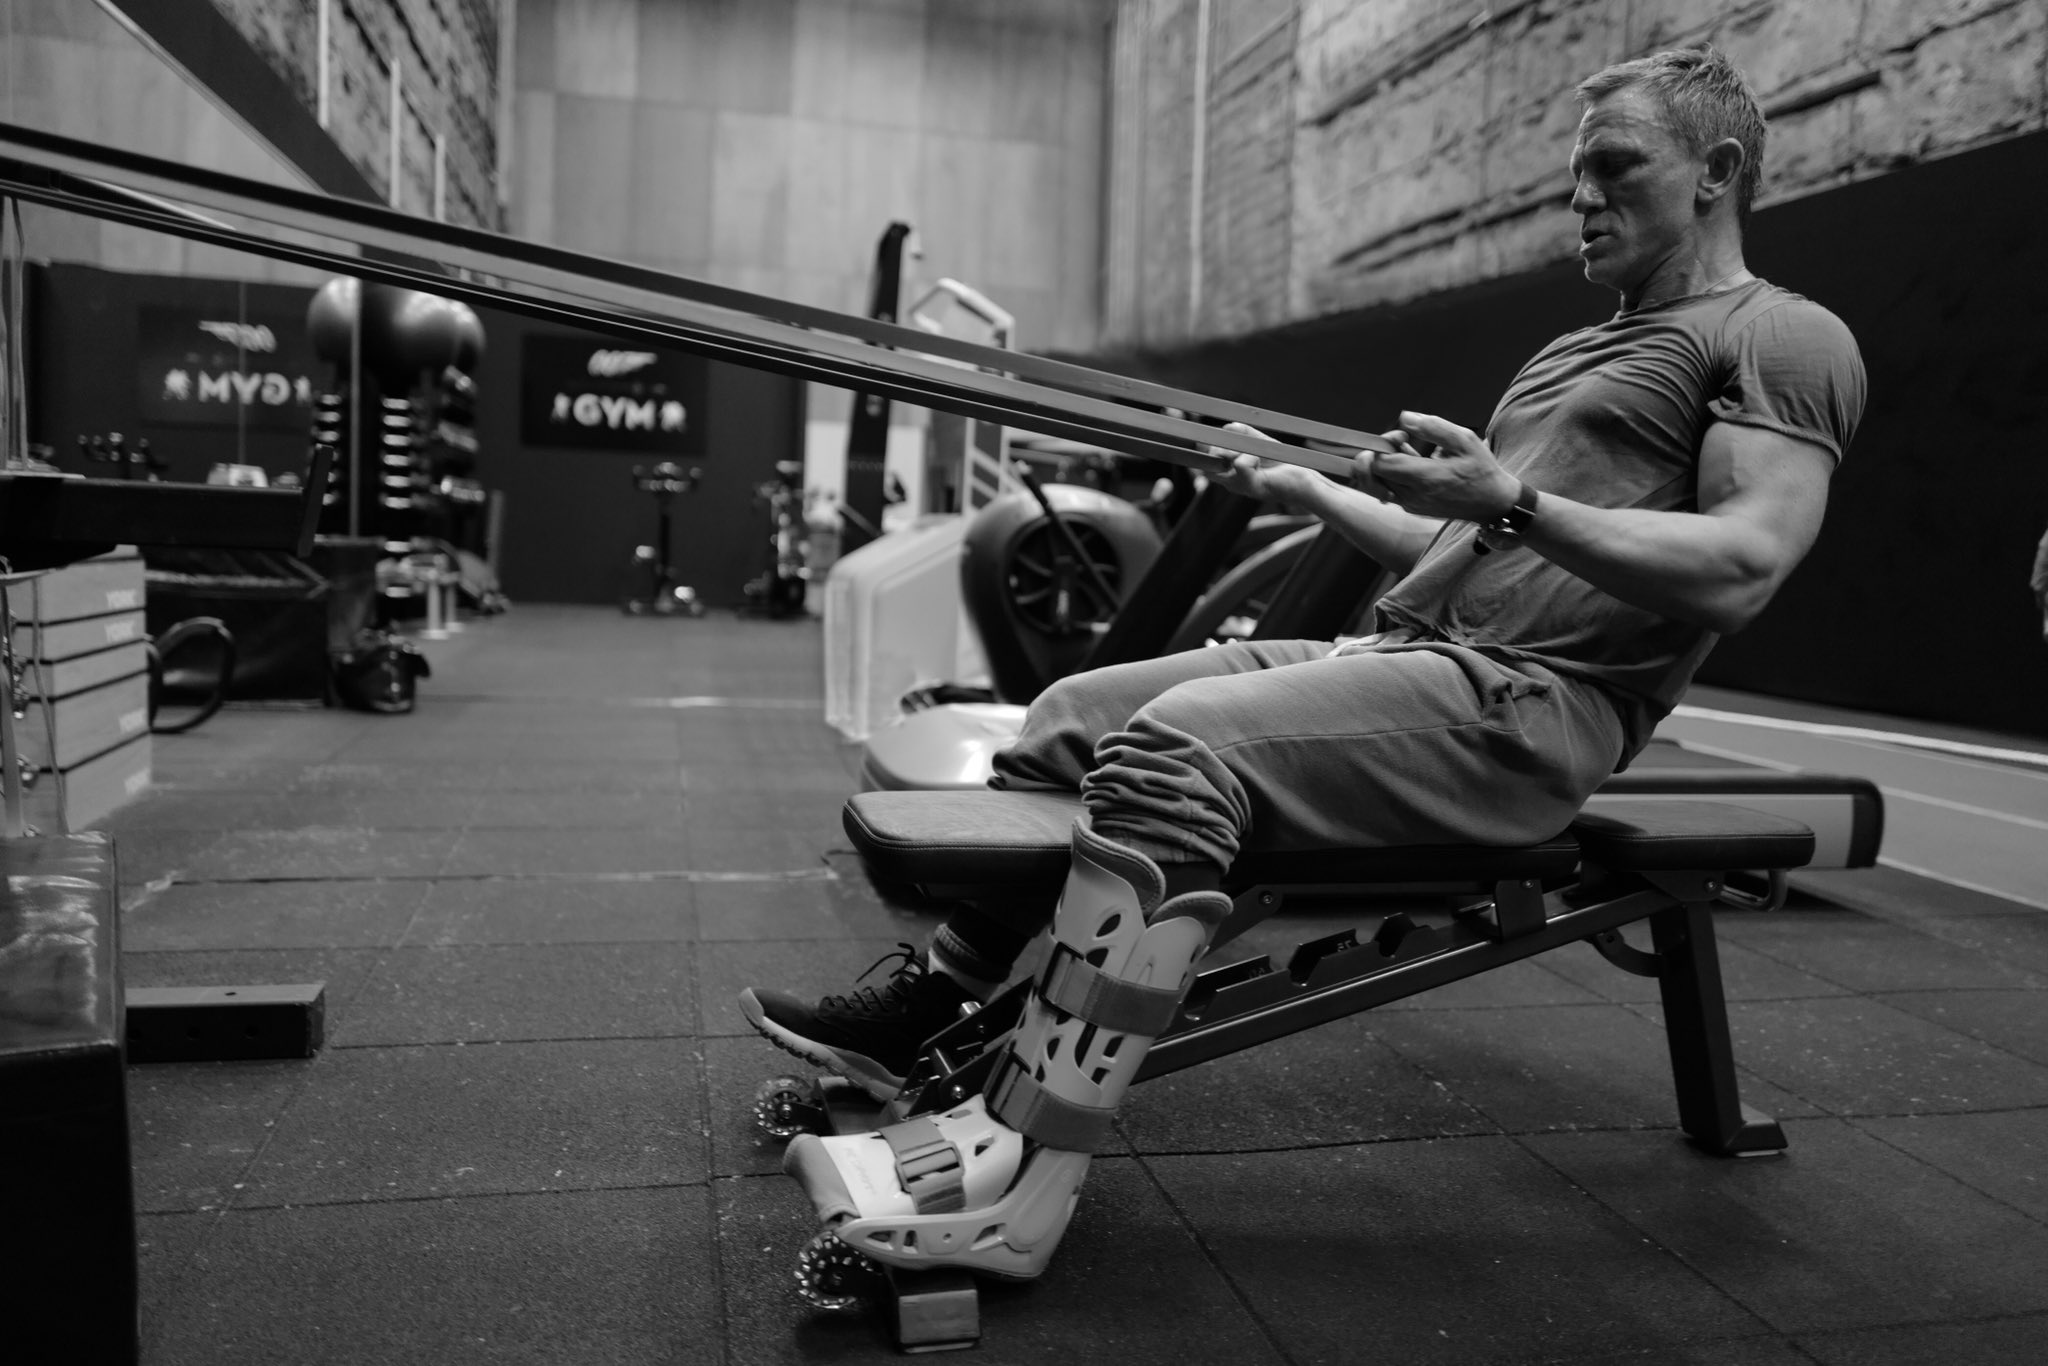 James Bond On Twitter 007 Daniel Craig Hitting The Gym Hard Pinewoodstudios Prepping For Shooting Next Week Bond25 Gregwinsight